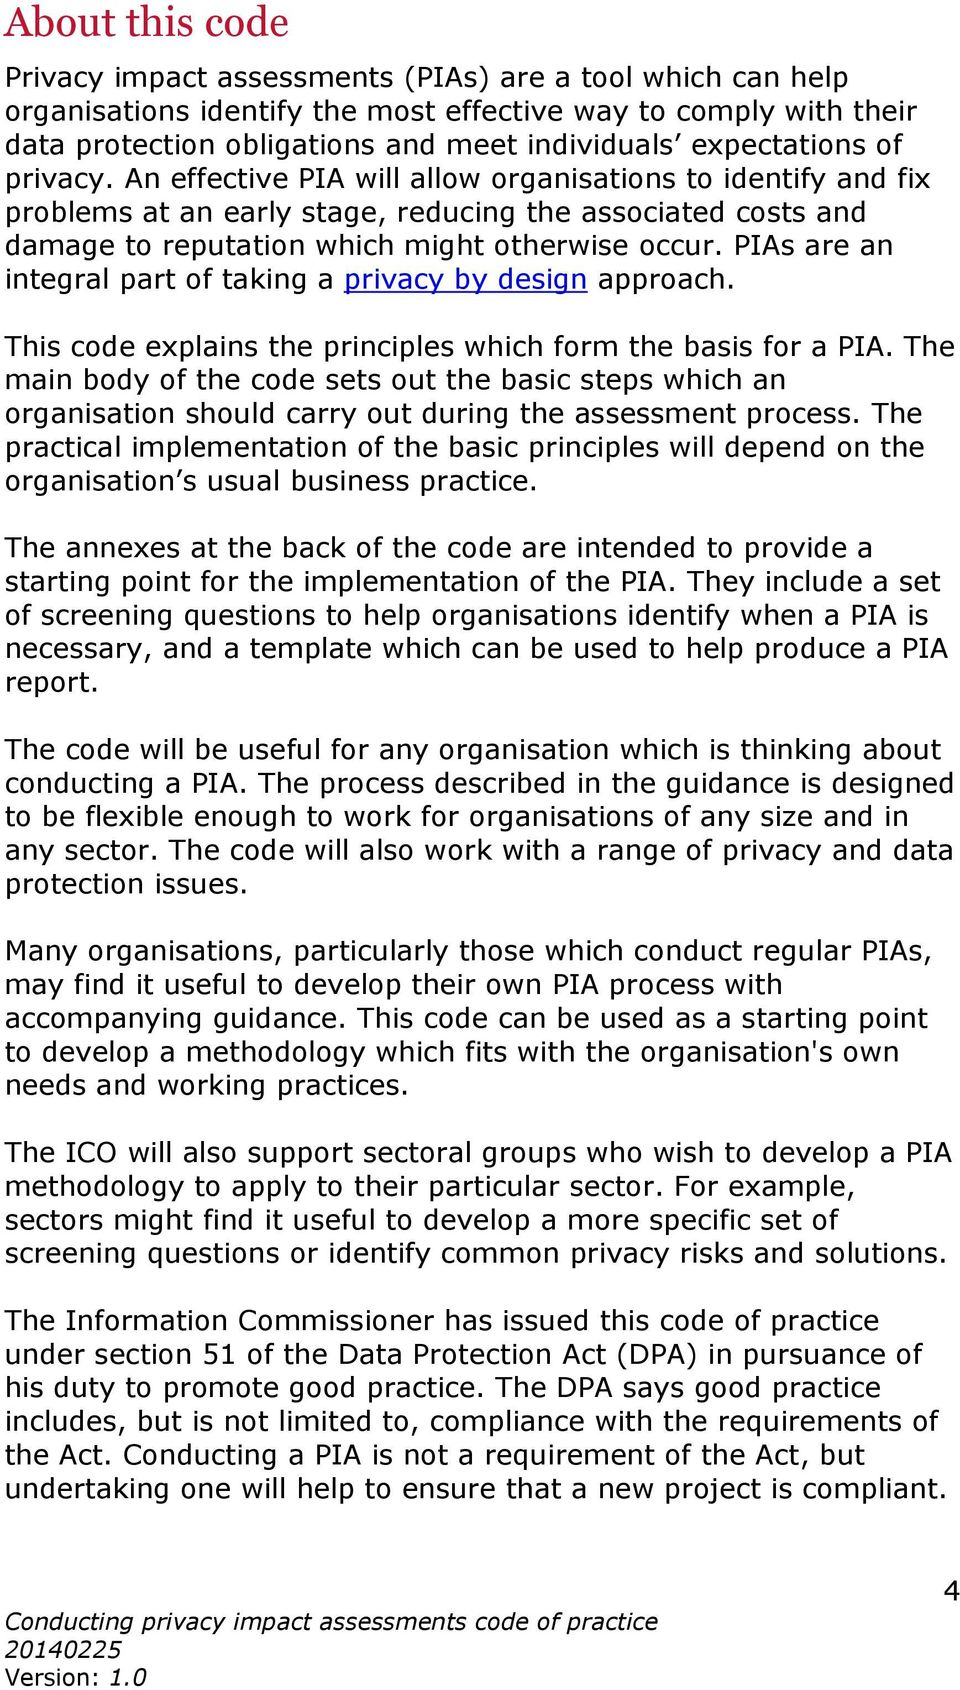 PIAs are an integral part of taking a privacy by design approach. This code explains the principles which form the basis for a PIA.